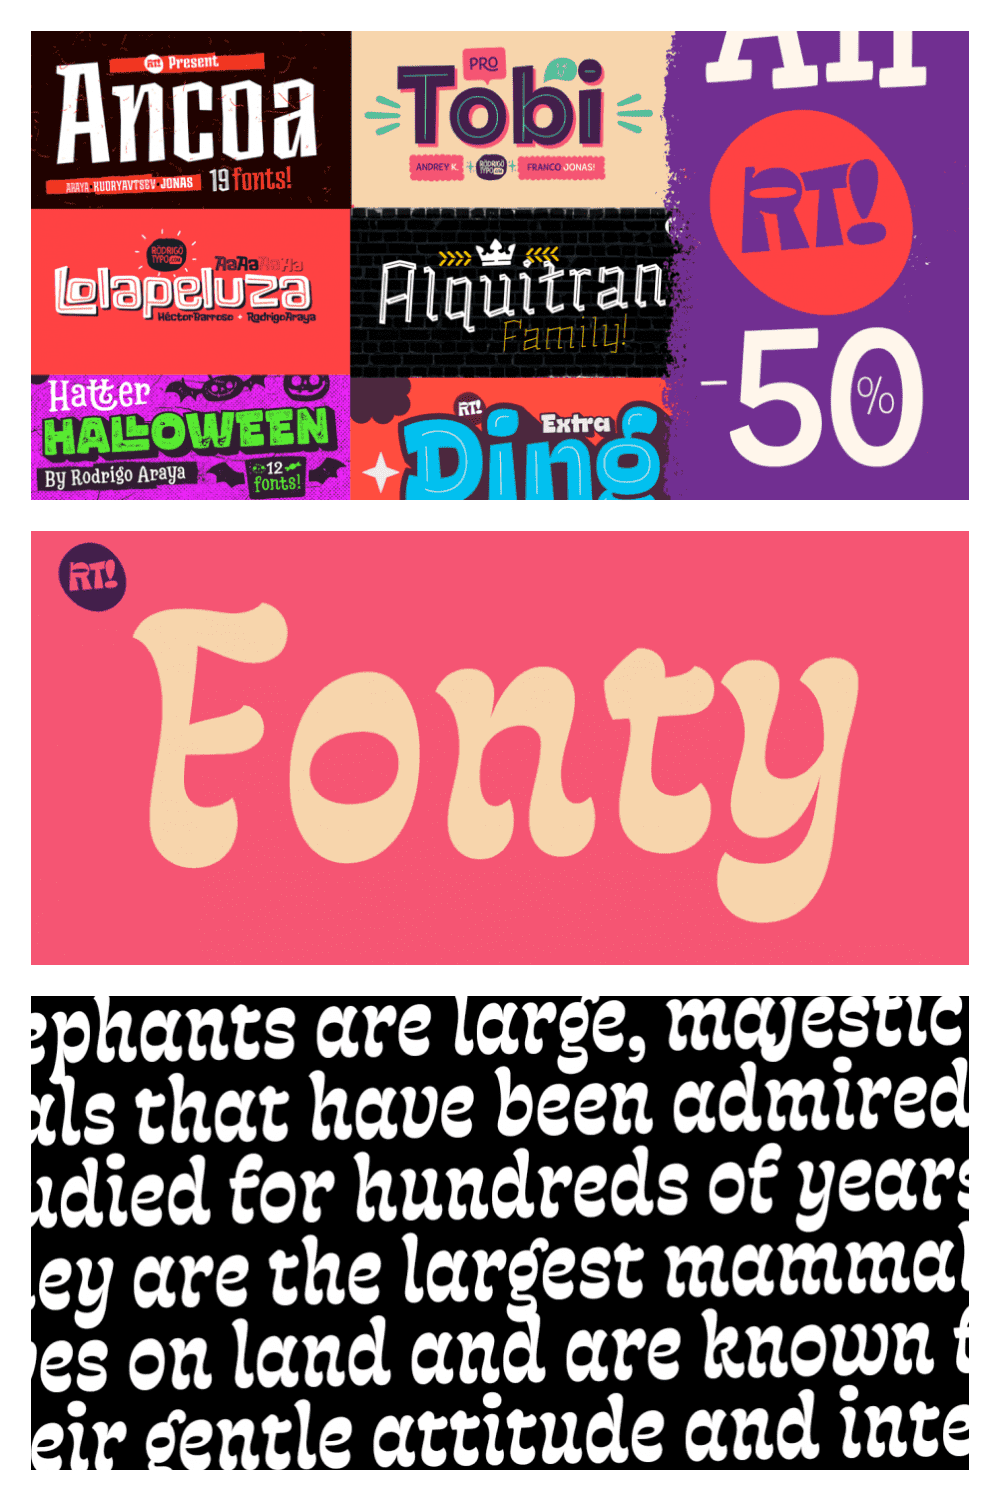 This is a very bright 90s style font.